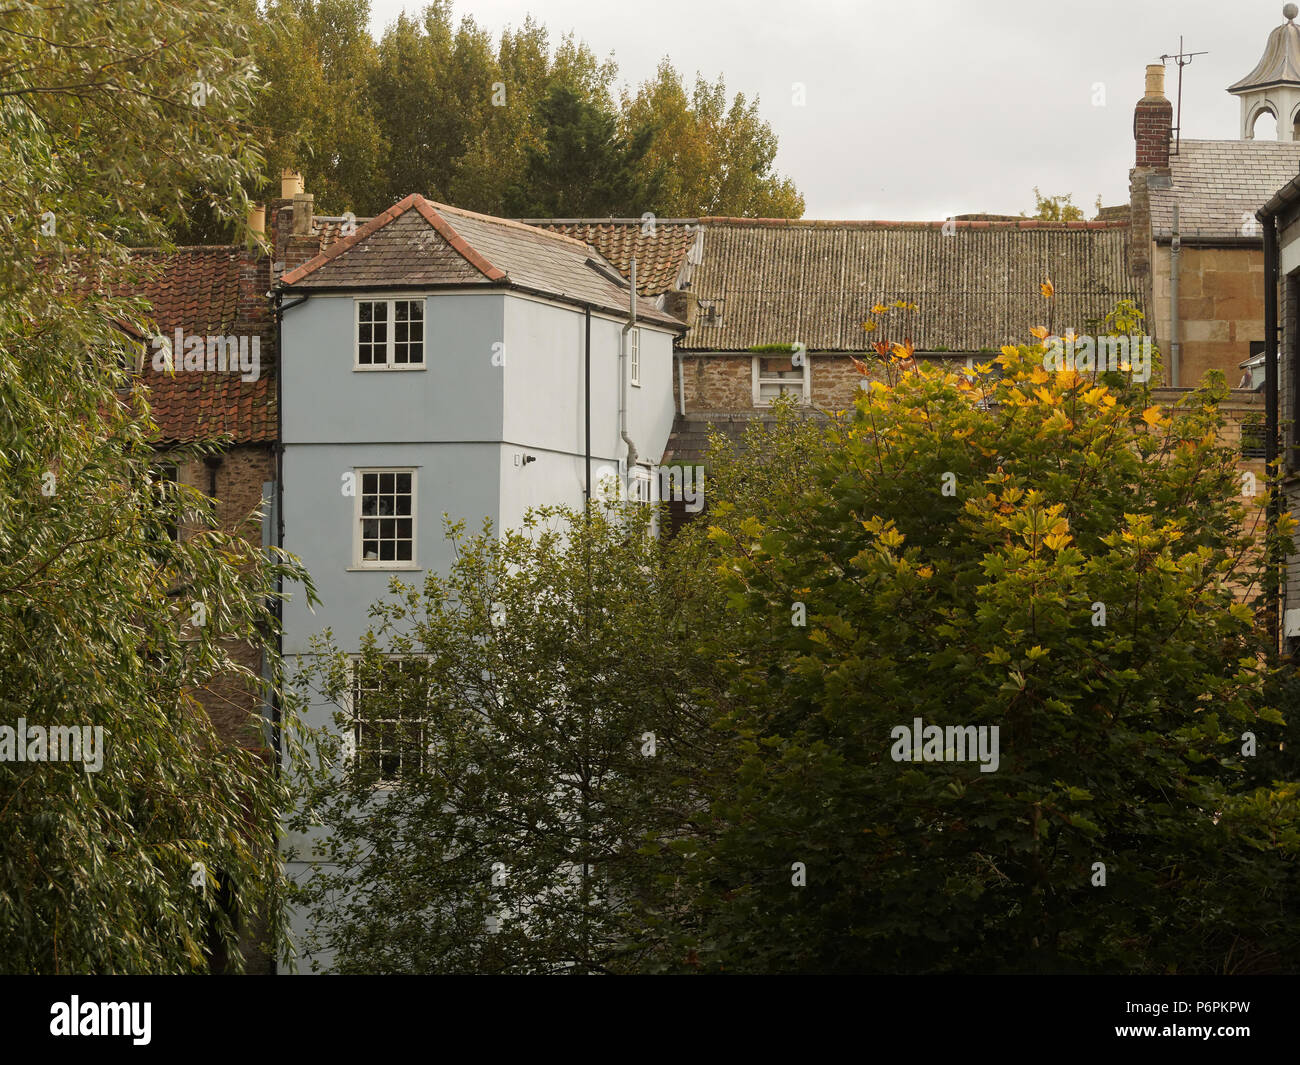 Somerset tourist attractions Uk Somerset Weston super Mare. Wells Cathedral city. Stock Photo